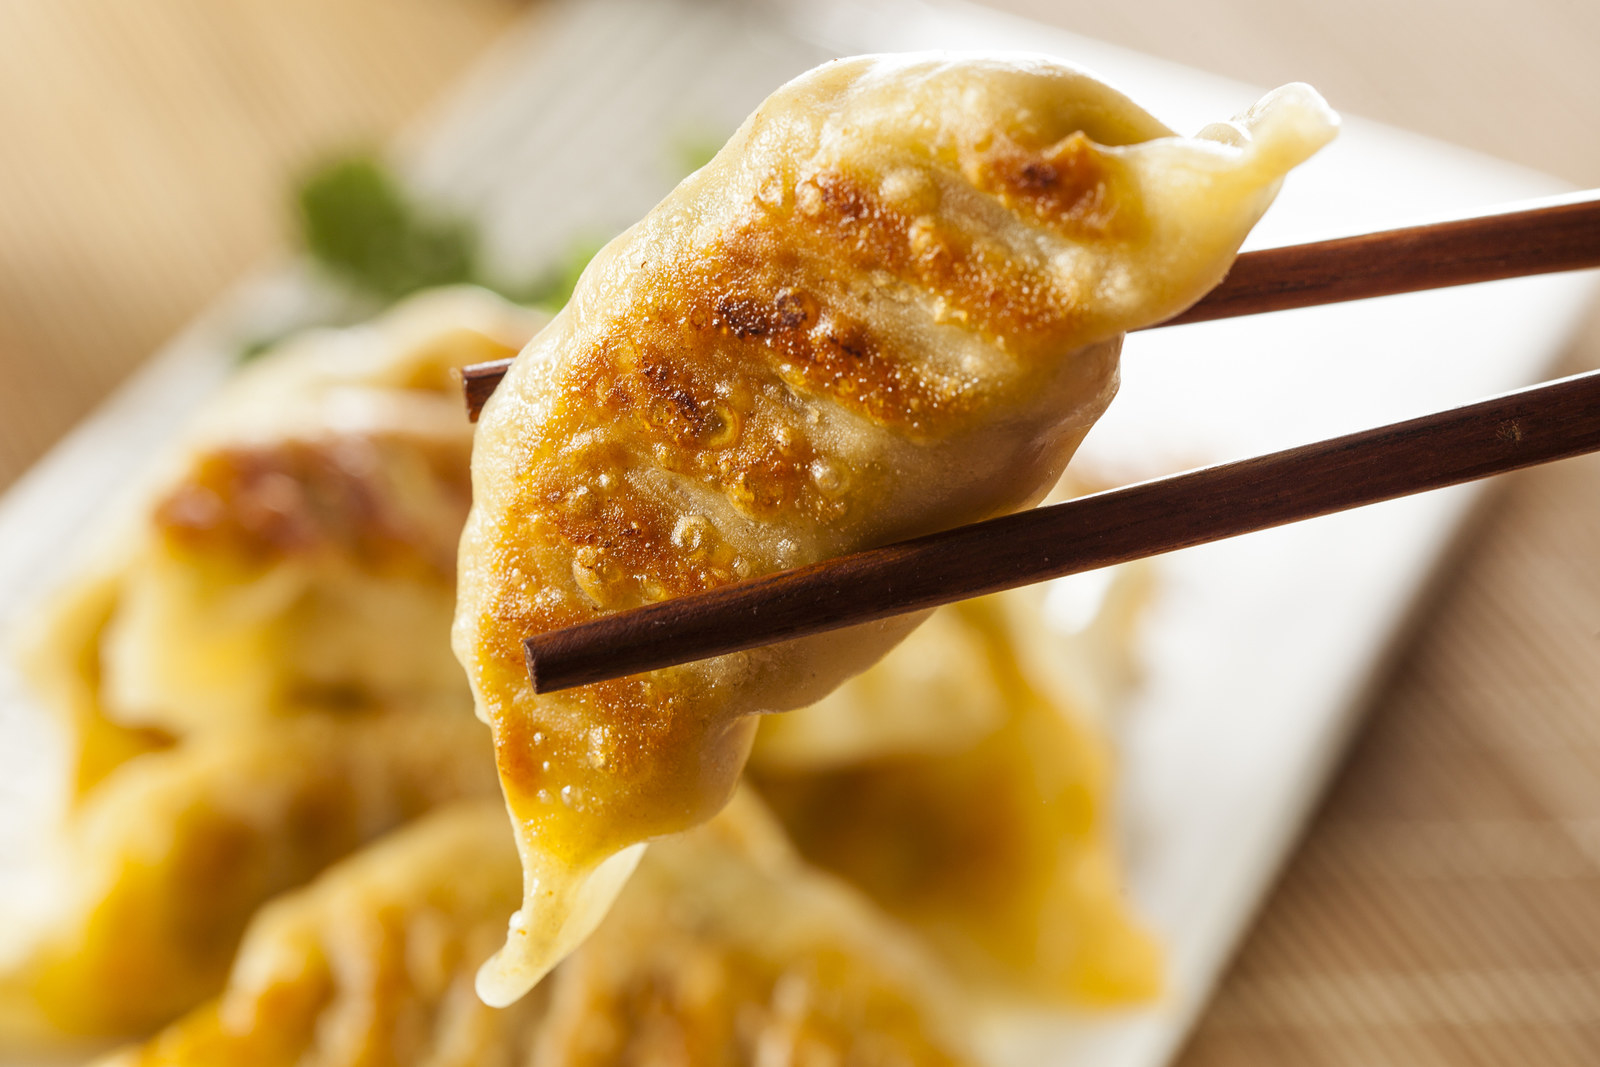 Most popular order: Potstickers